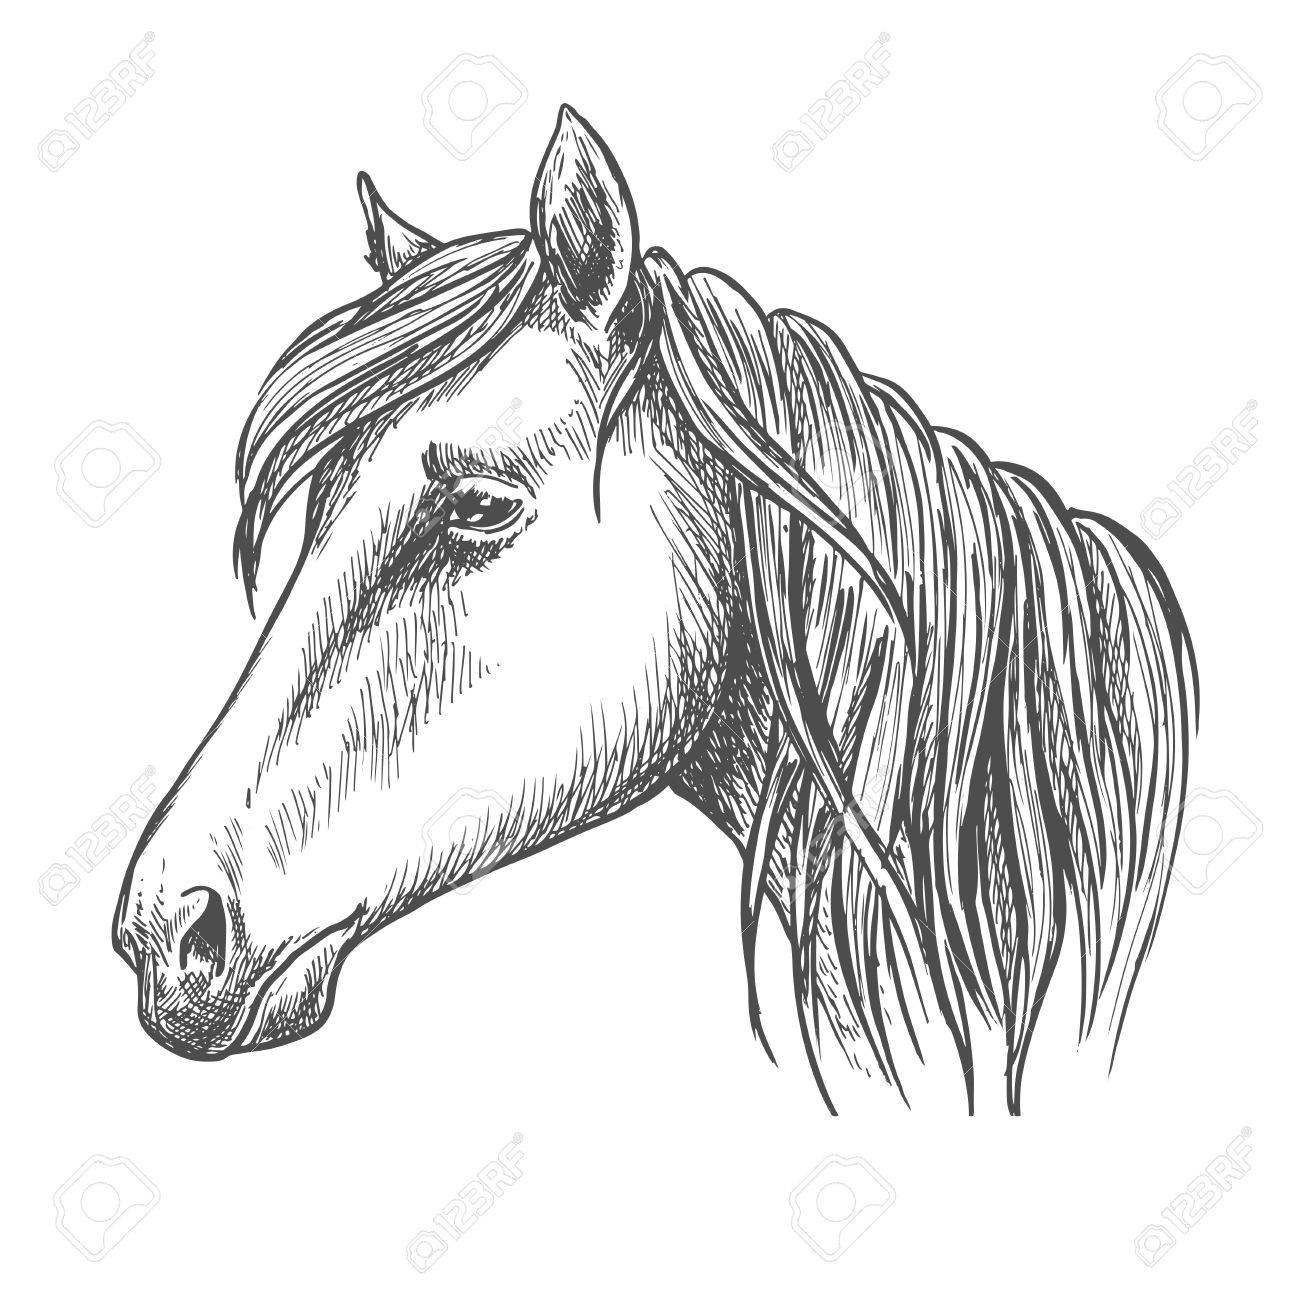 1300x1300 Riding Horse Head Sketch With Long Mane. Horse Racing, Equestrian